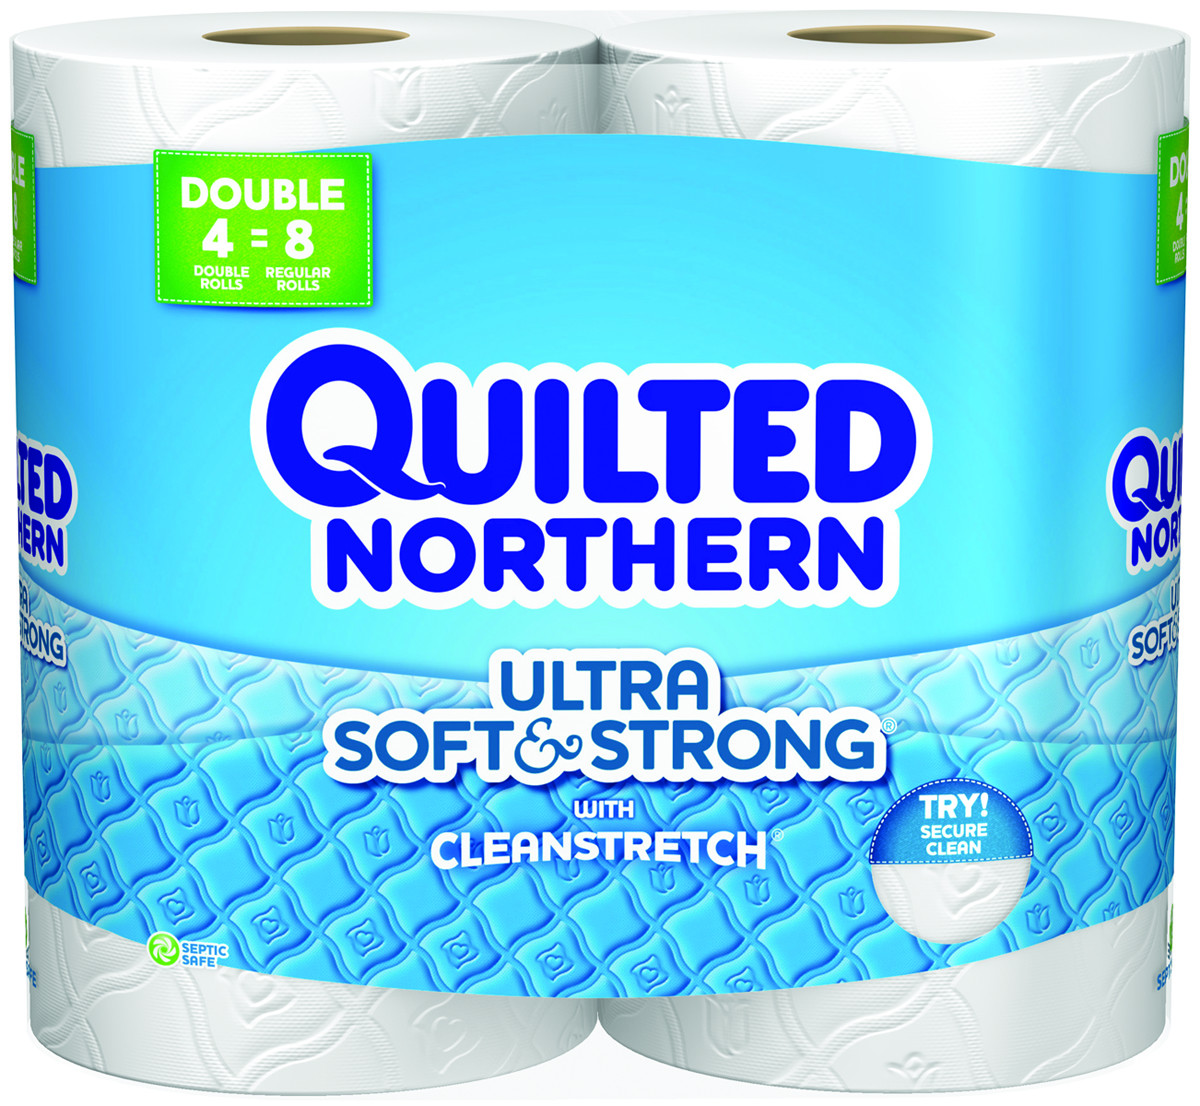 quilted collection or soft amazoncom charmin toilet brands per ultra paper images double northern the quilt of sheets roll